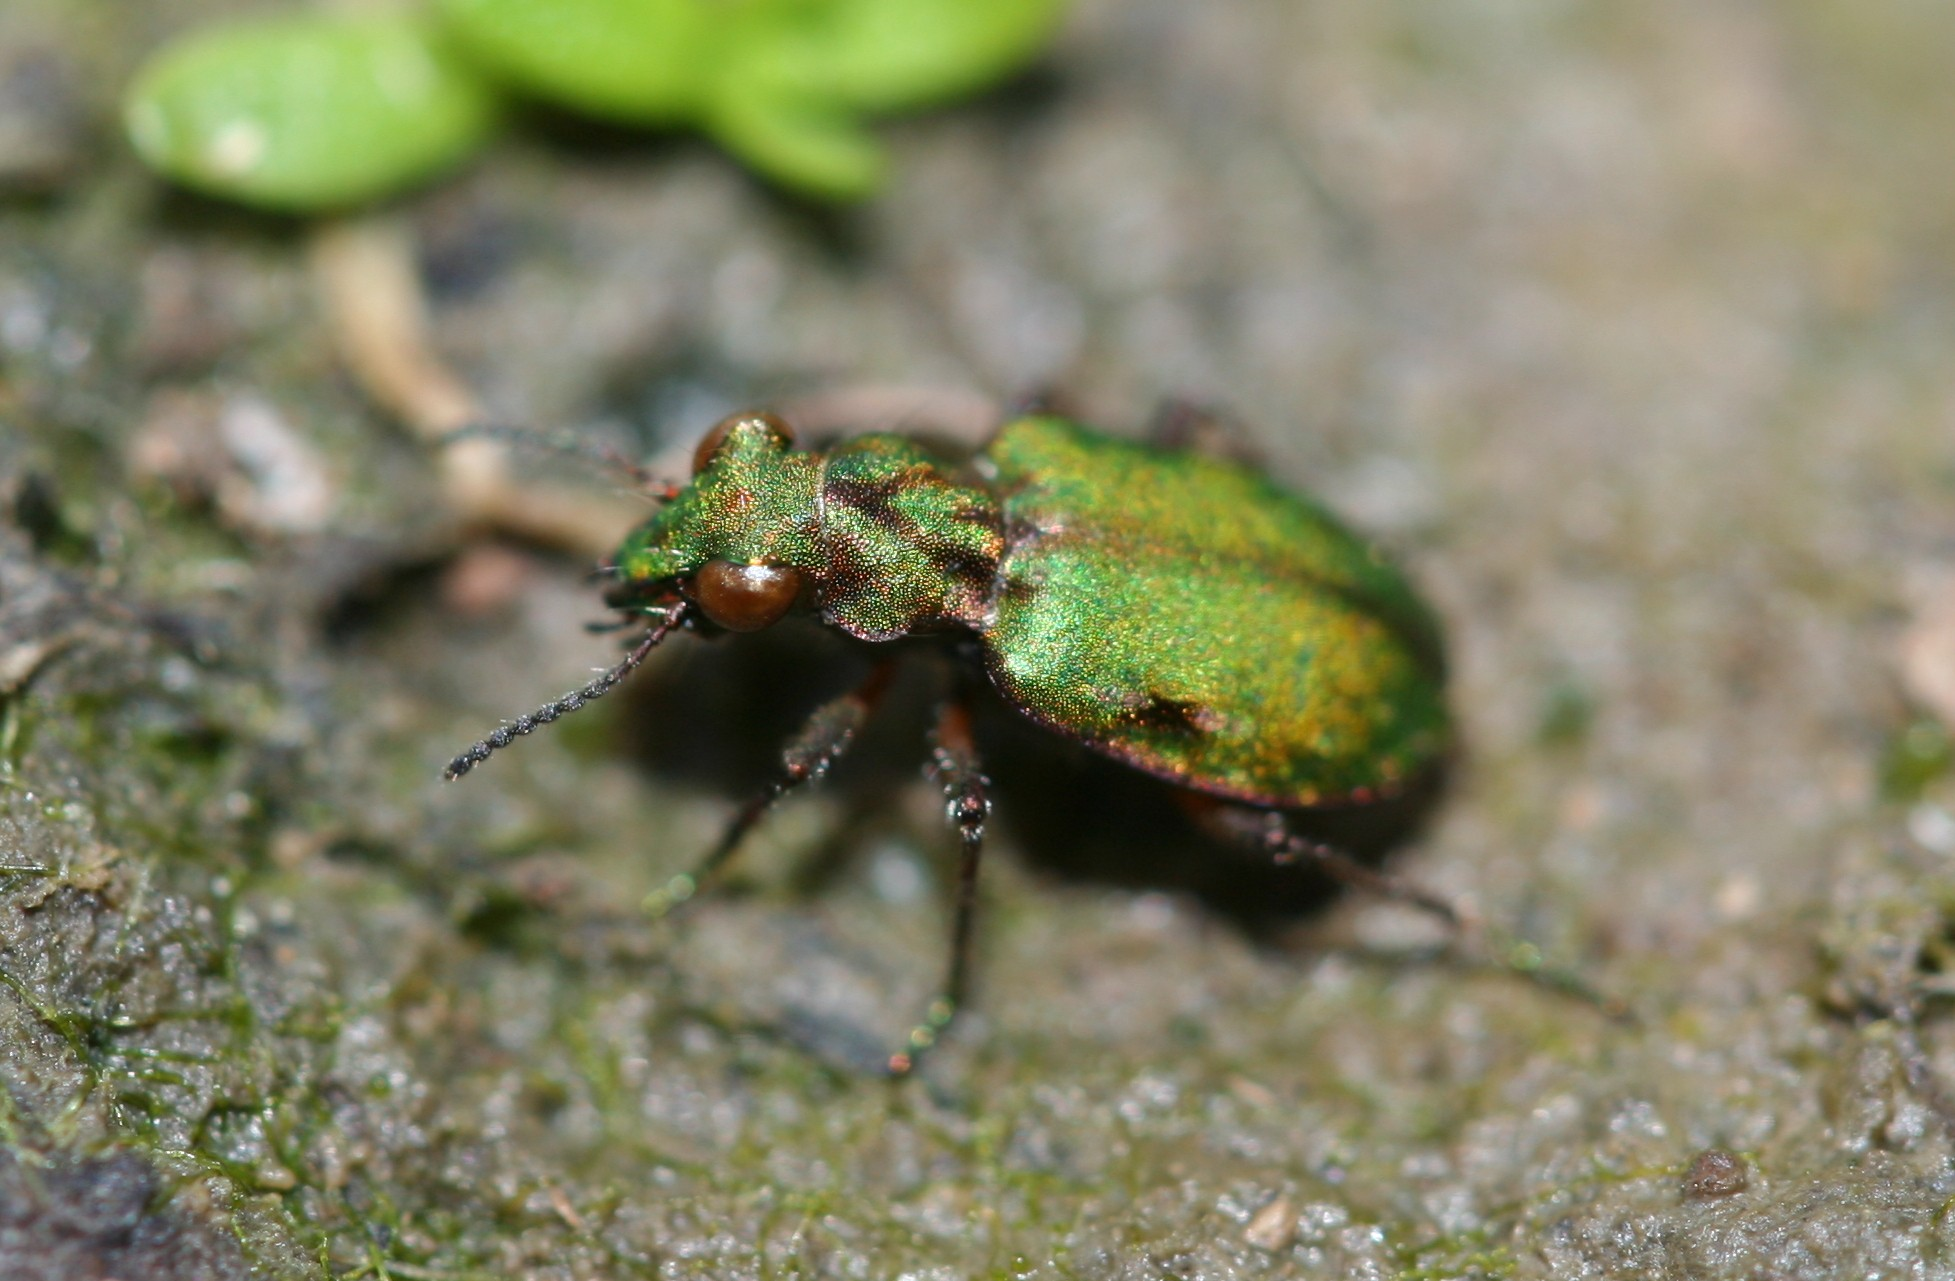 a green iridescent beetle on the ground